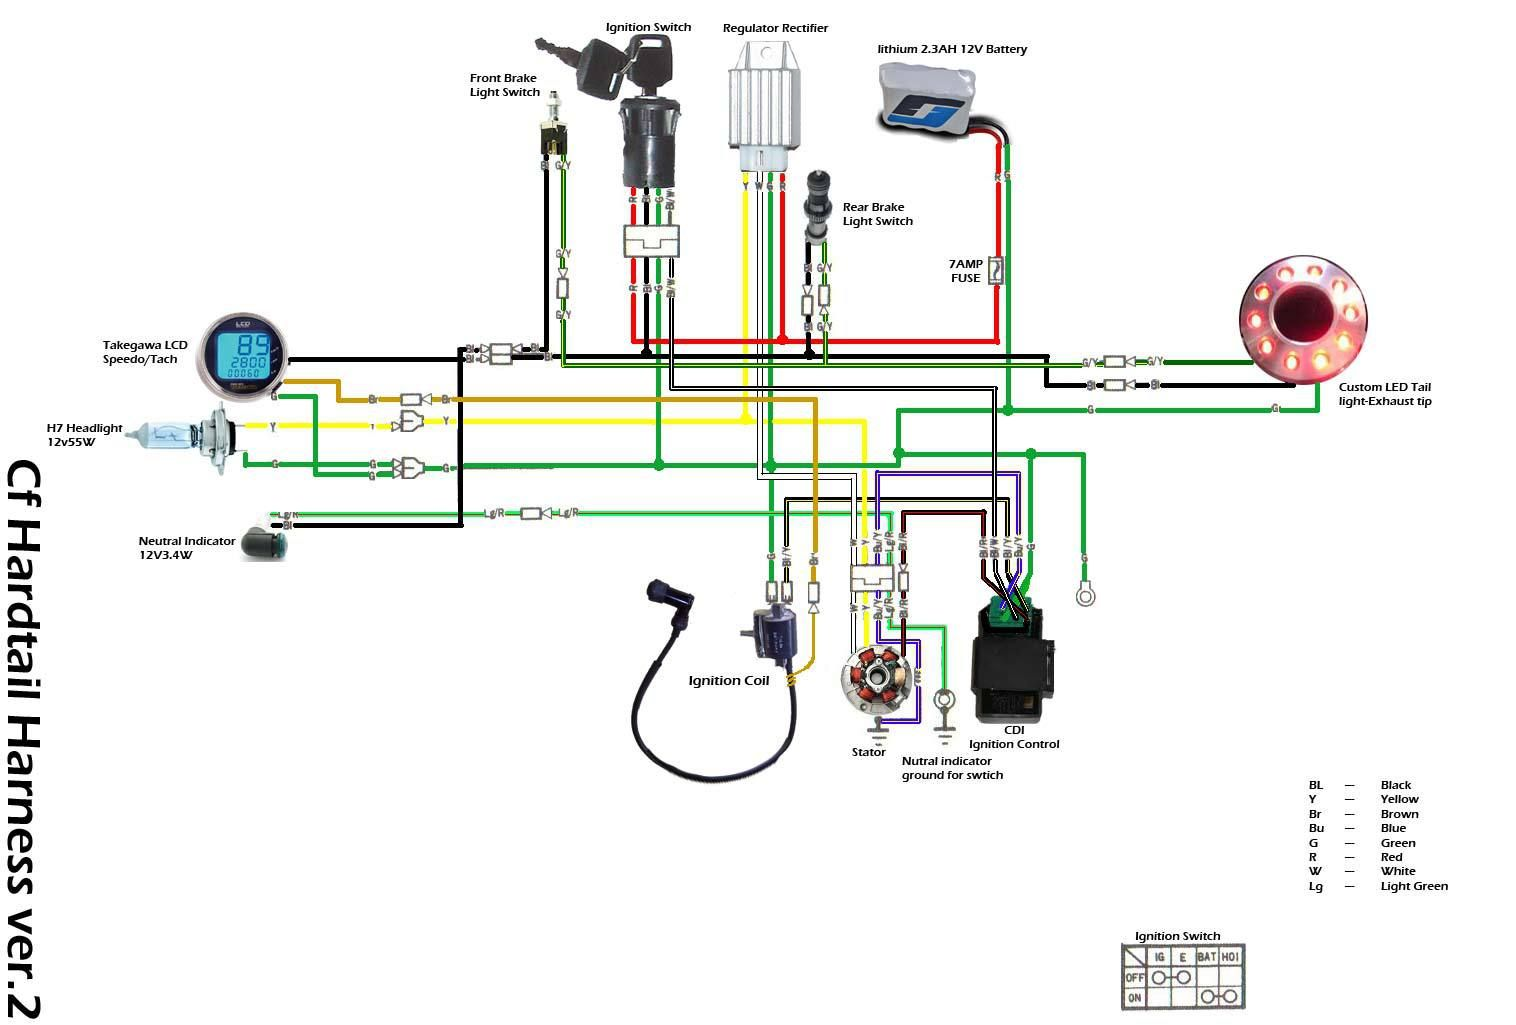 110cc basic wiring setup atvconnection com atv enthusiast community within 110cc chinese atv diagram [ 1516 x 1025 Pixel ]